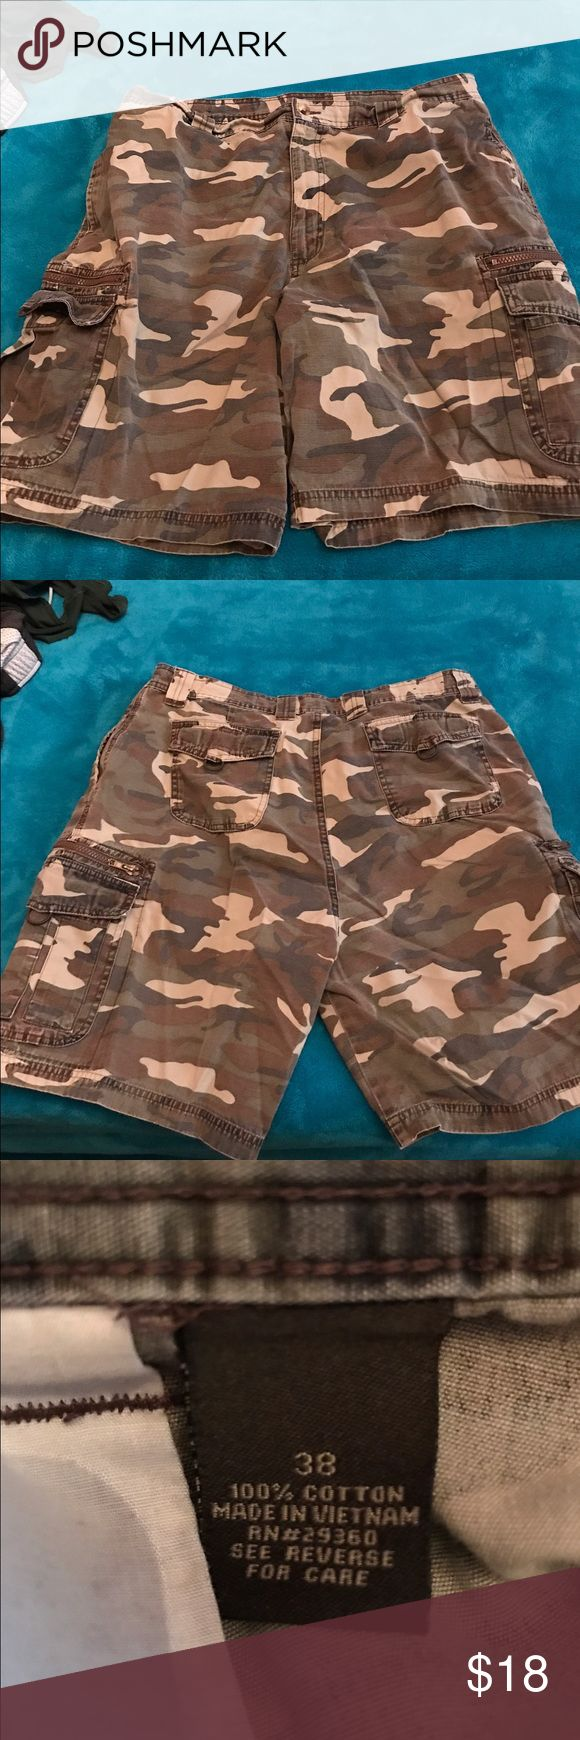 MENS CARGO SHORTS SZ 38 Men's Camo cargo shorts, lots of pockets, size 38, by Great Nortwest in Excellent Condition Great Northwest Shorts Cargo